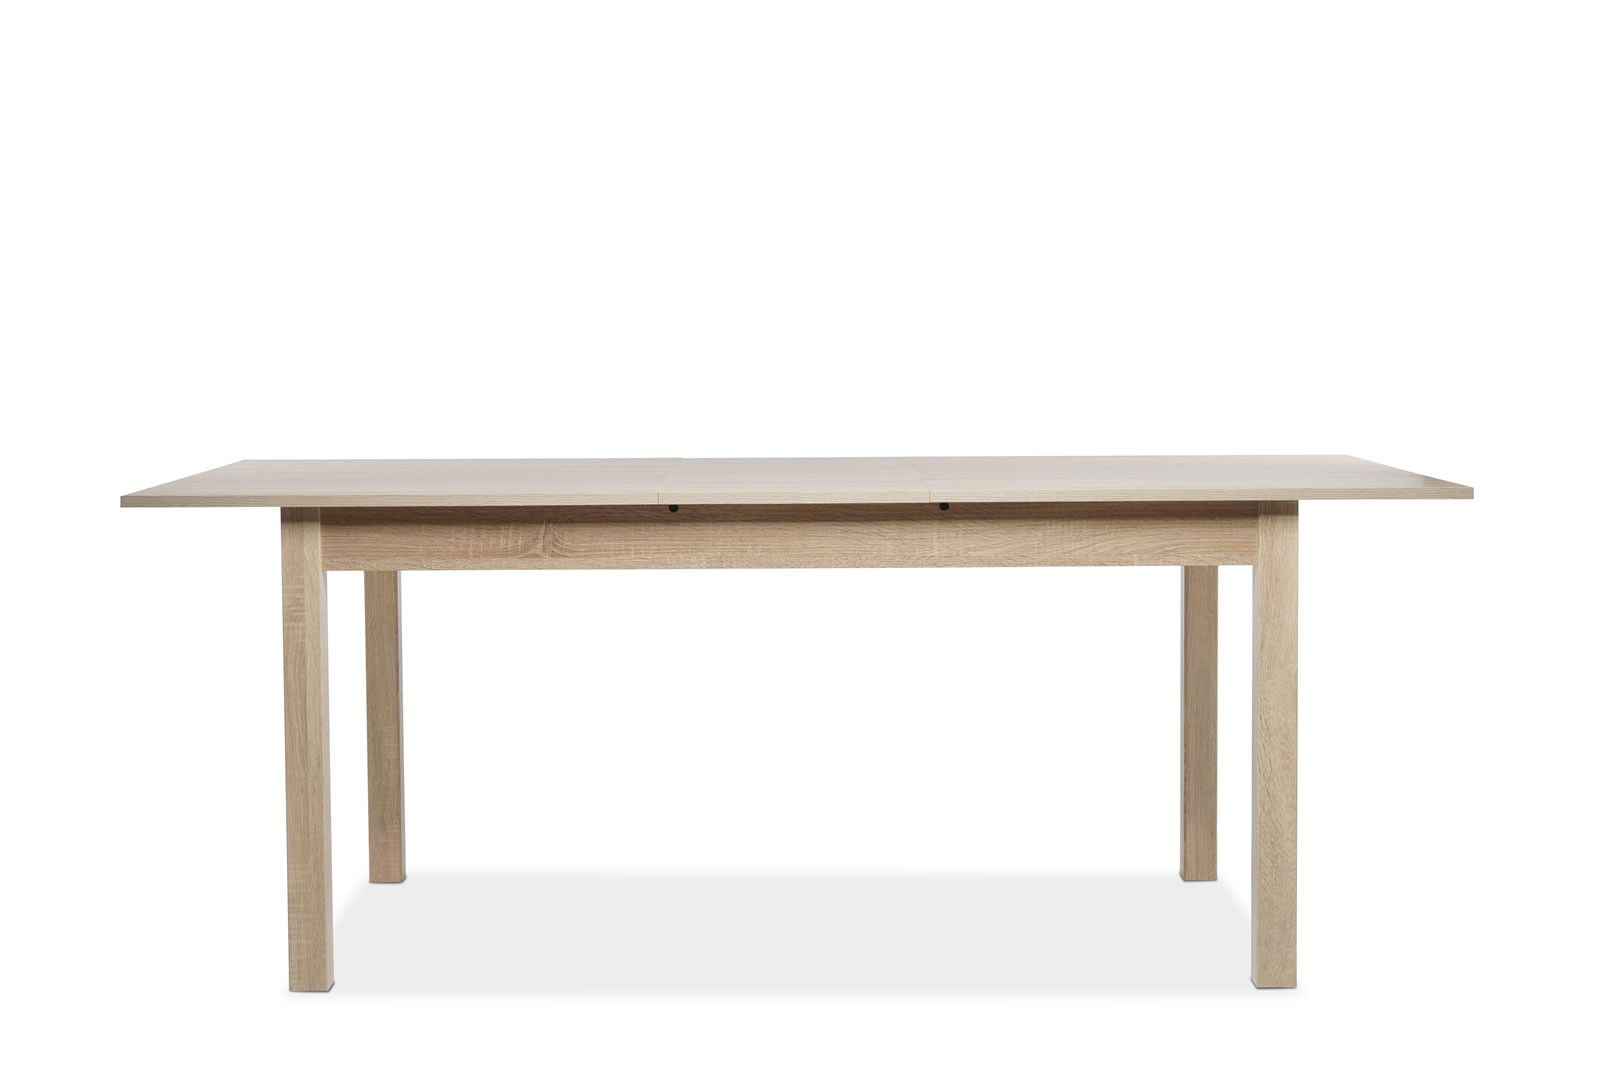 Table manger avec allonge 160 200 cm jiminy ch ne clair for Table a manger avec allonges